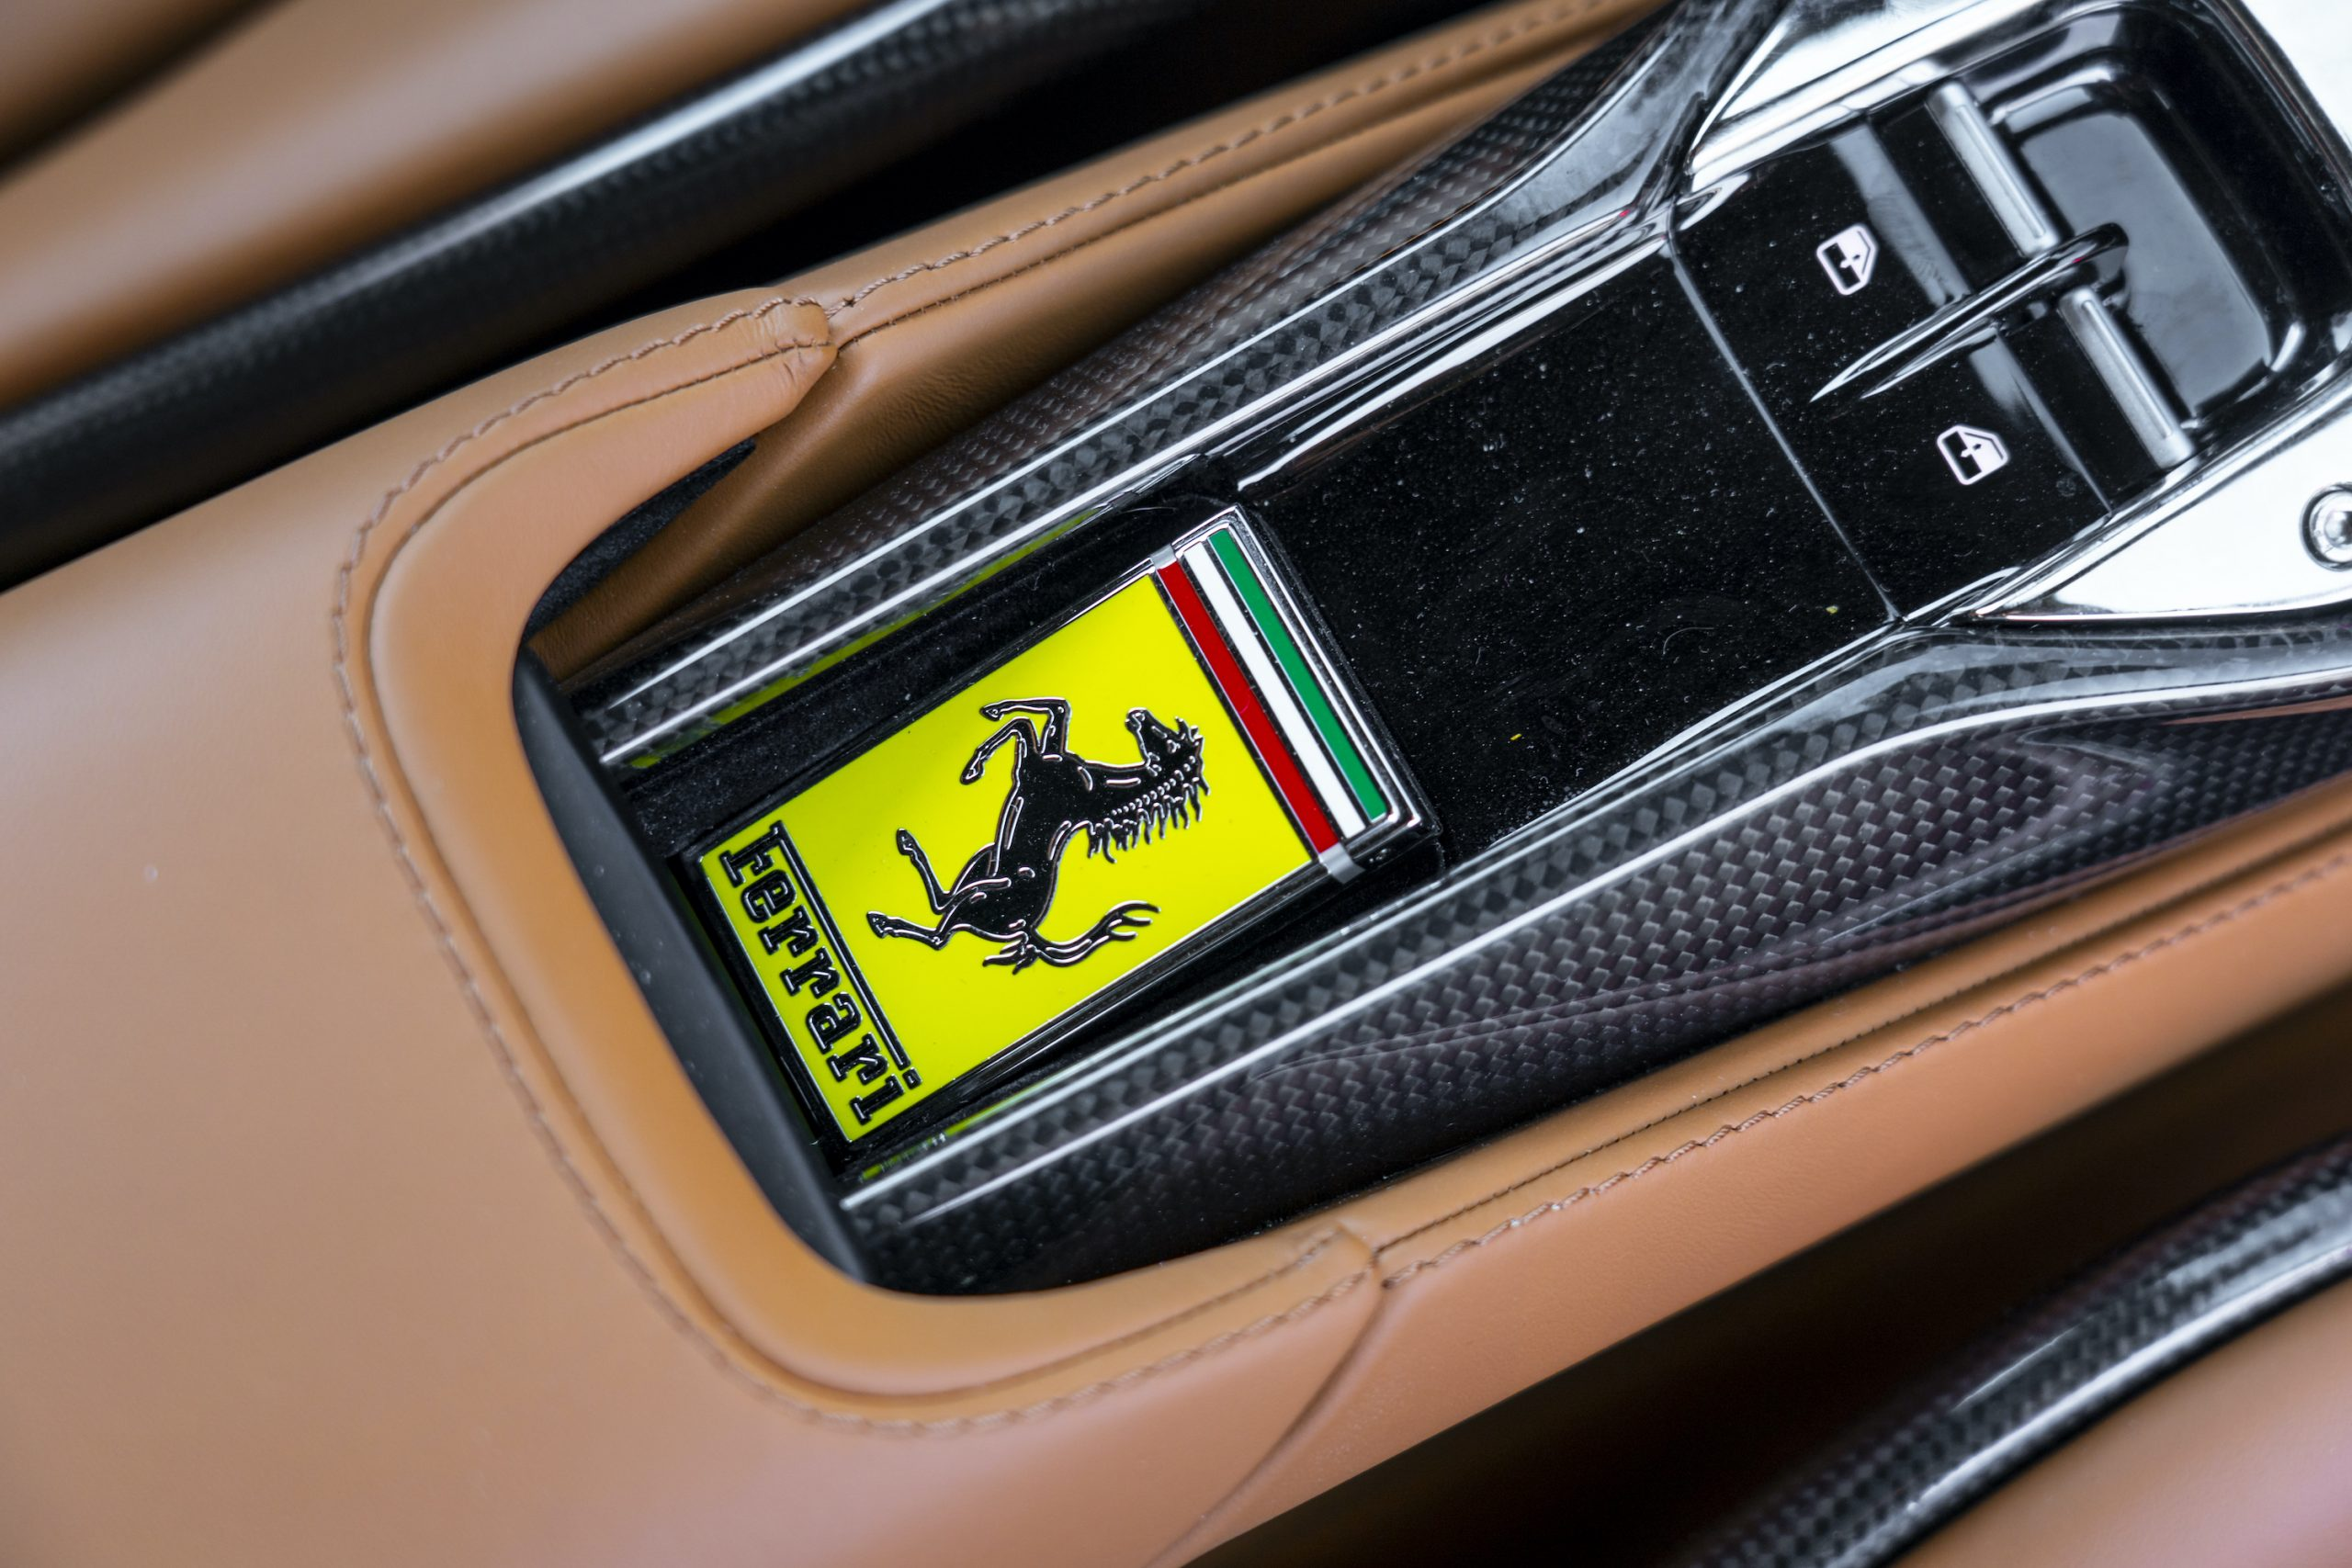 SF90 Stradale ferrari badge